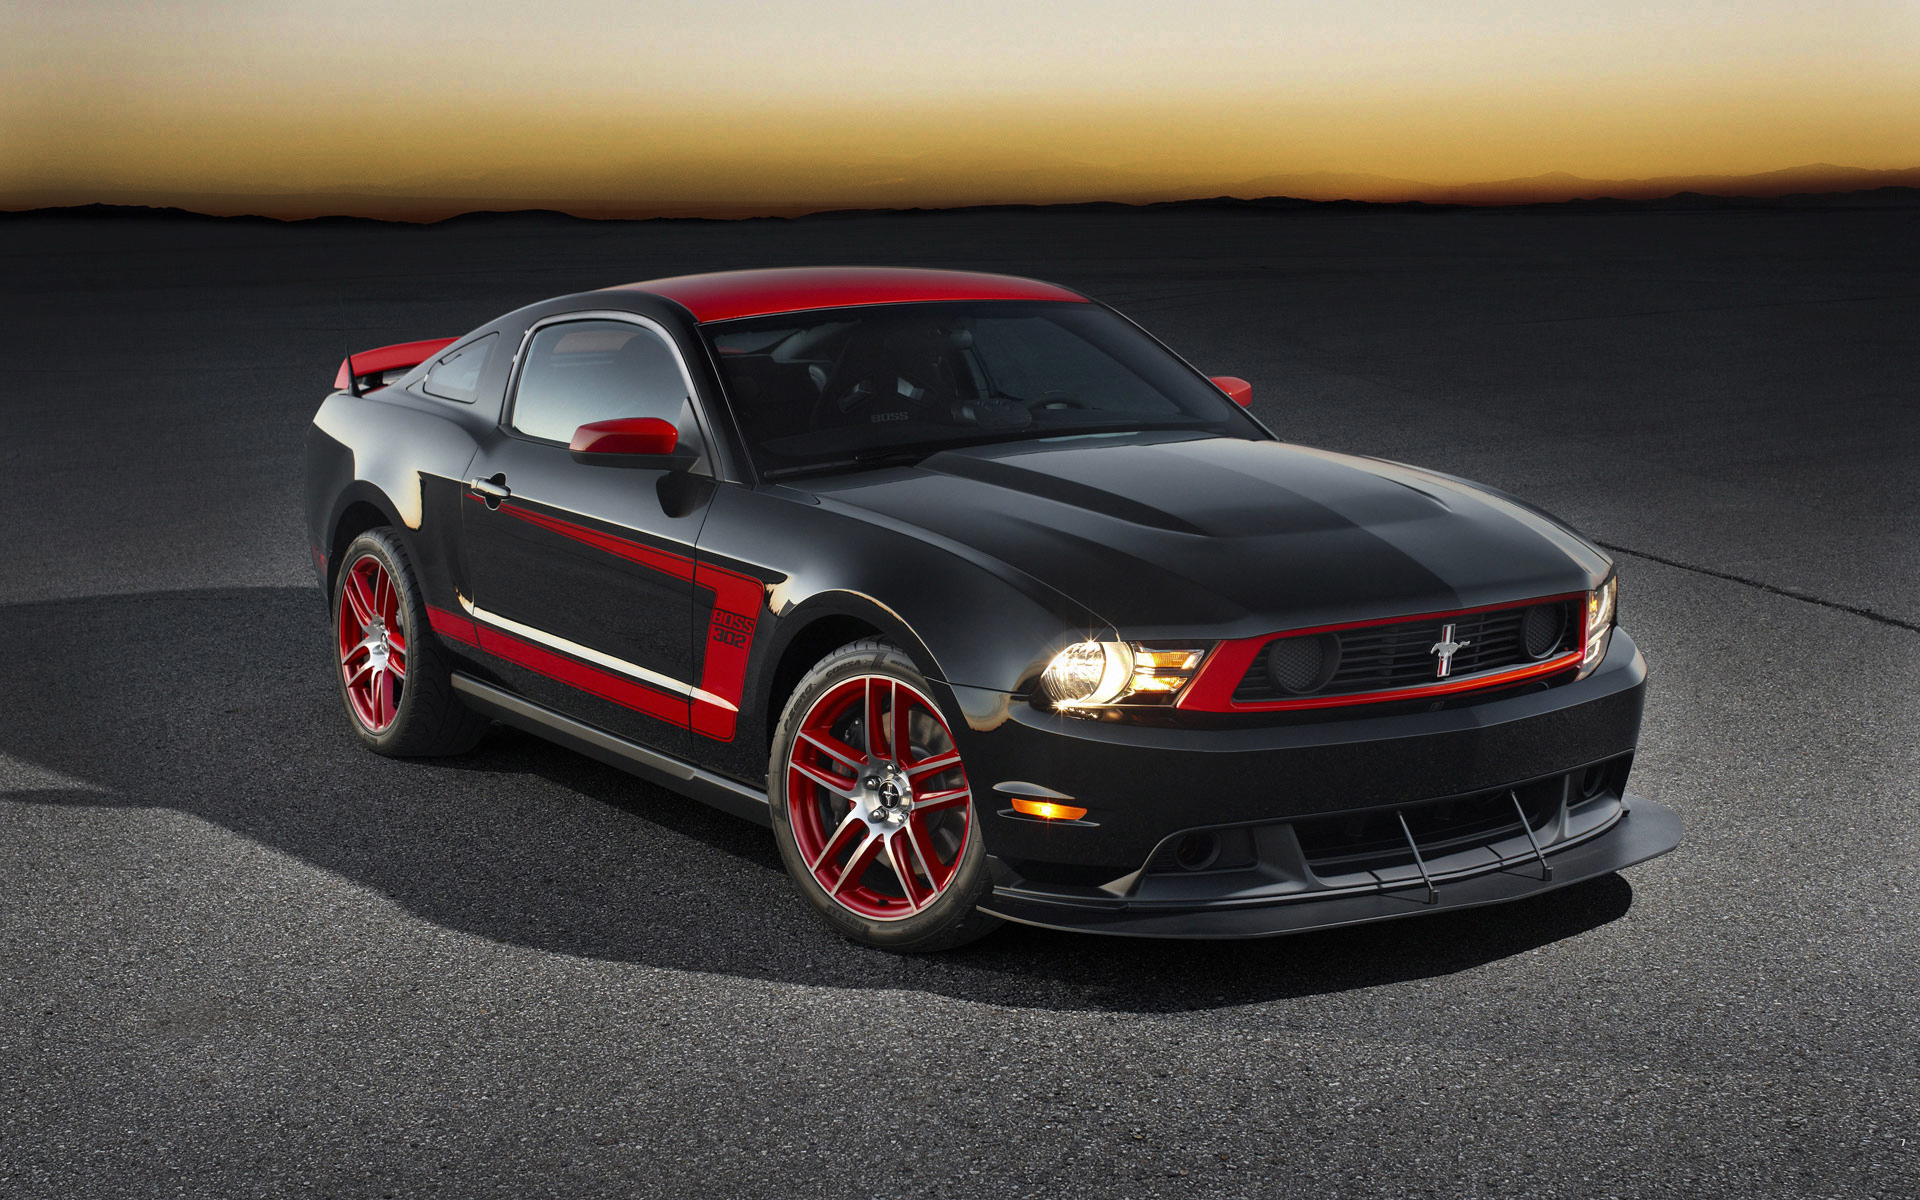 49 Ford Mustang Boss 302 Hd Wallpapers Background Images